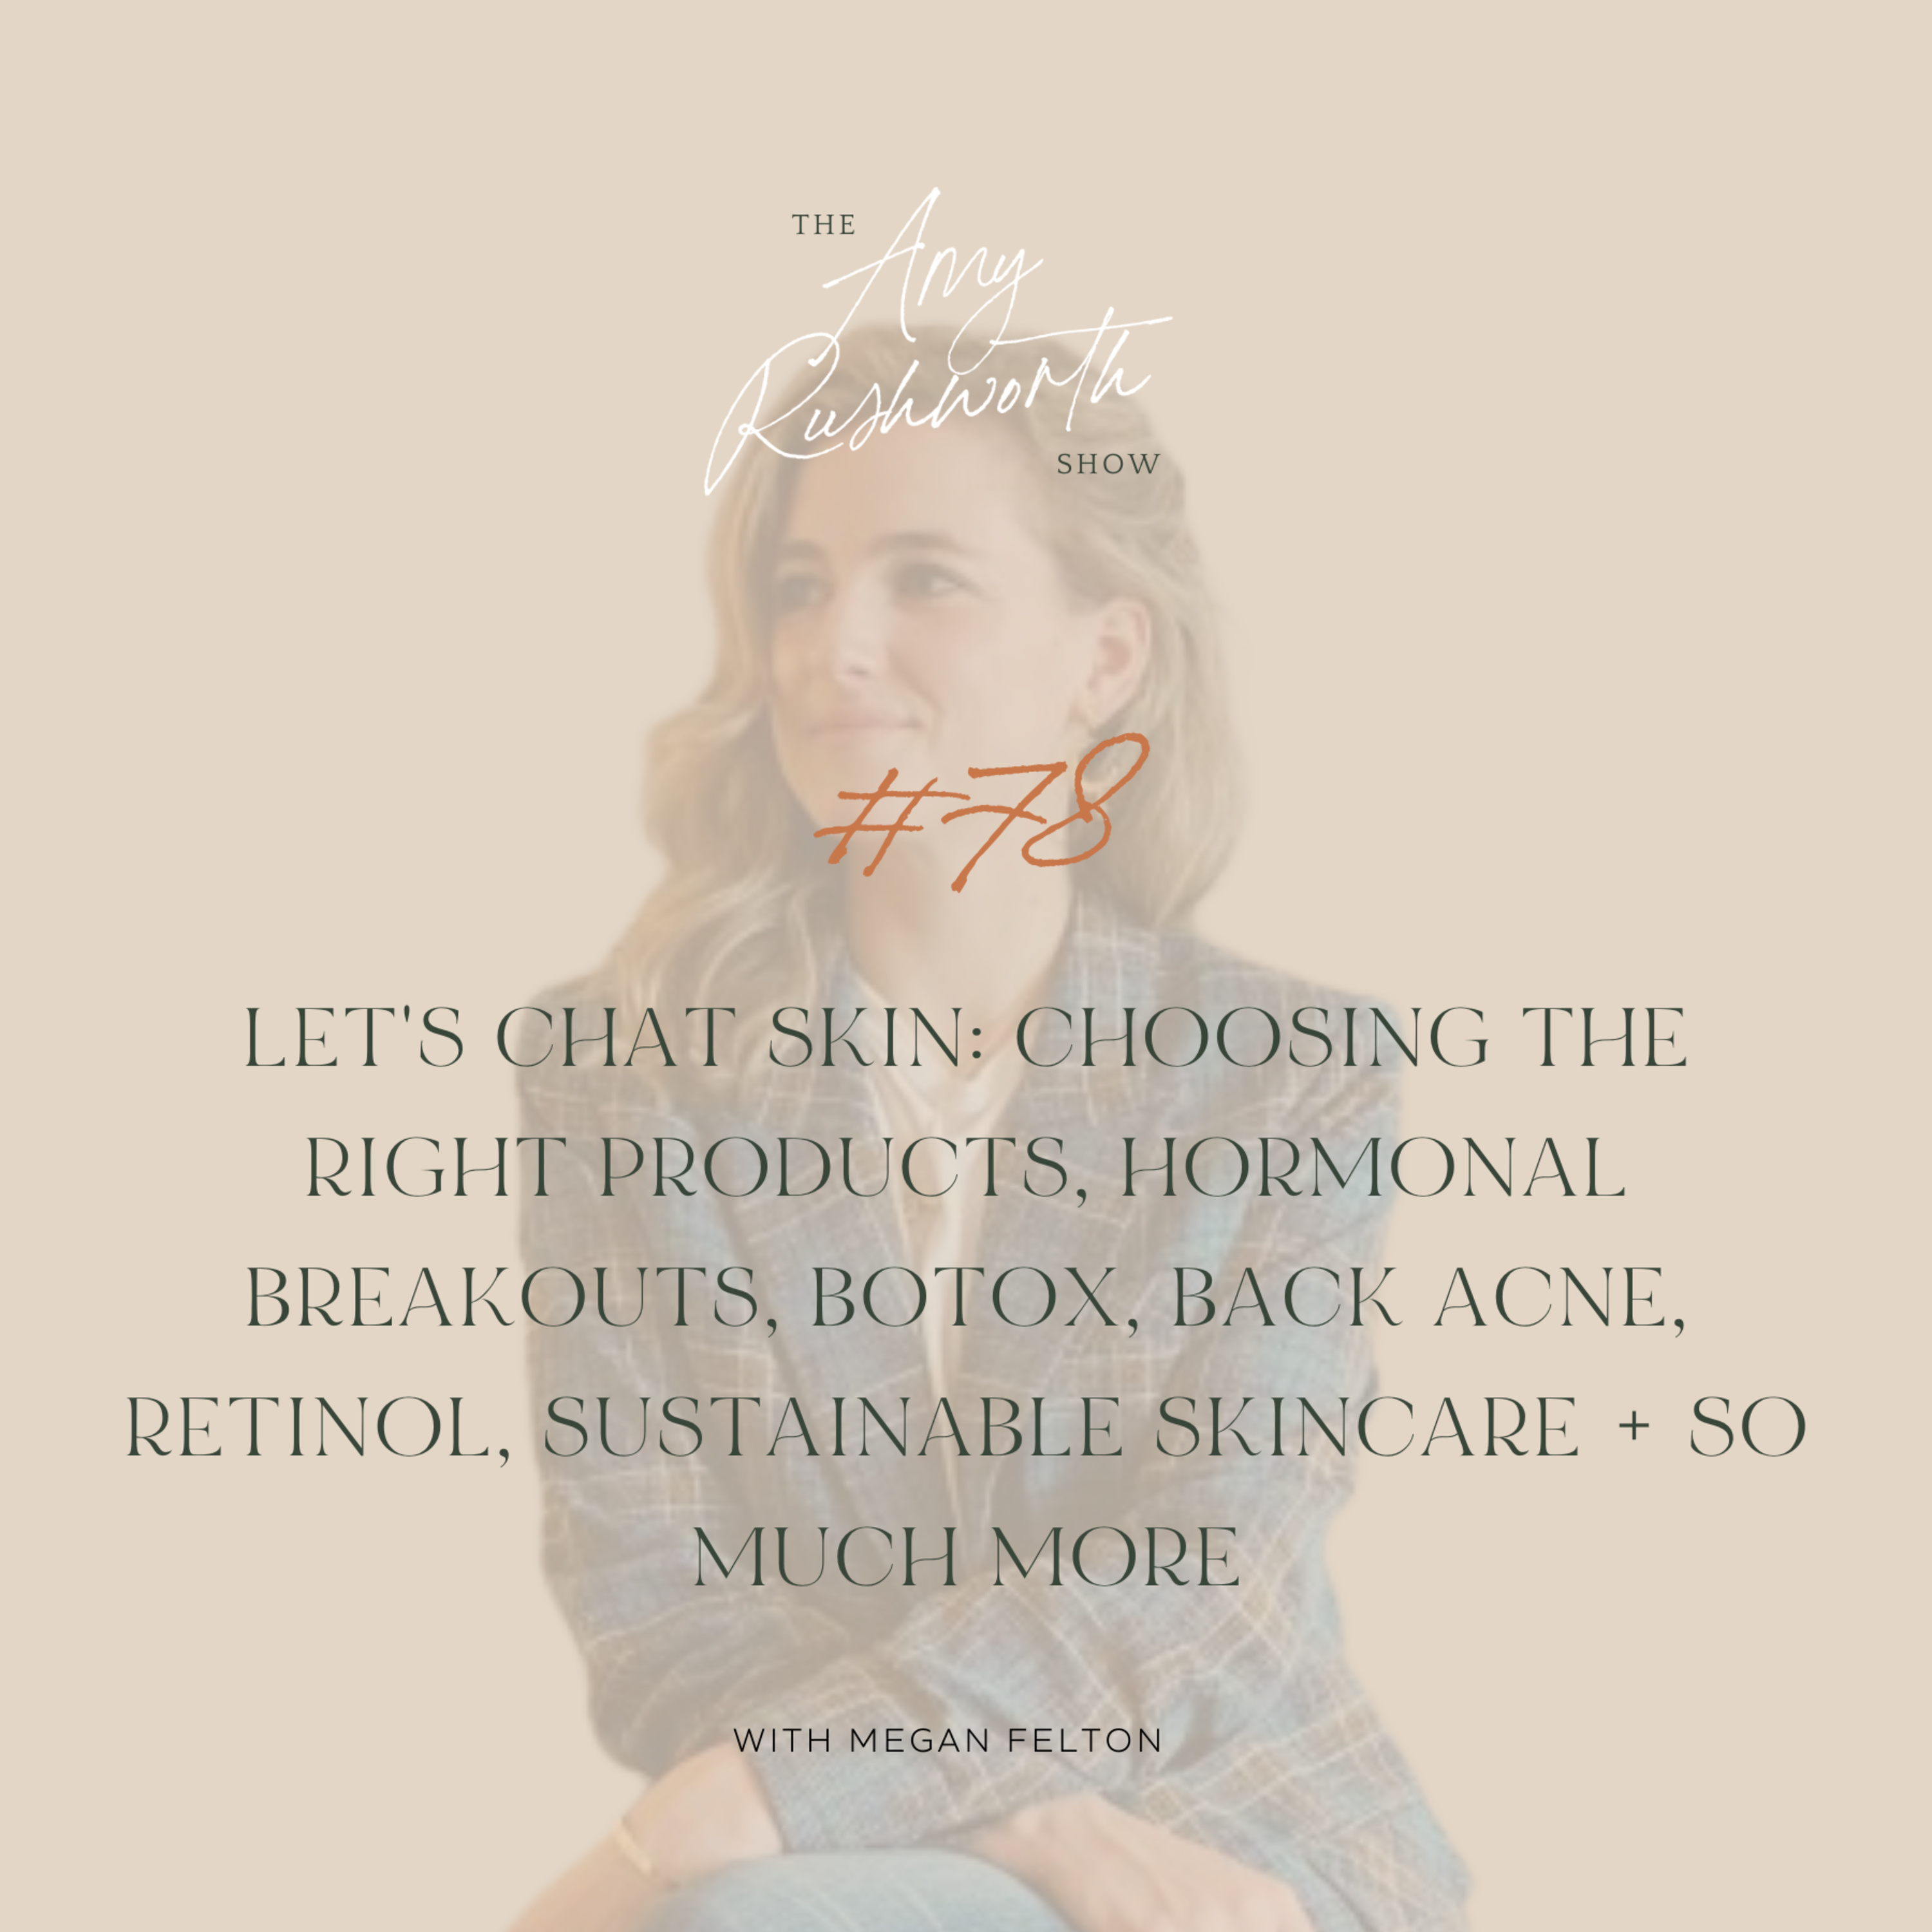 78 - Let's Chat Skin: Choosing The Right Products, Hormonal Breakouts, Botox, Back Acne, Retinol, Sustainable Skincare + So Much More with Megan Felton